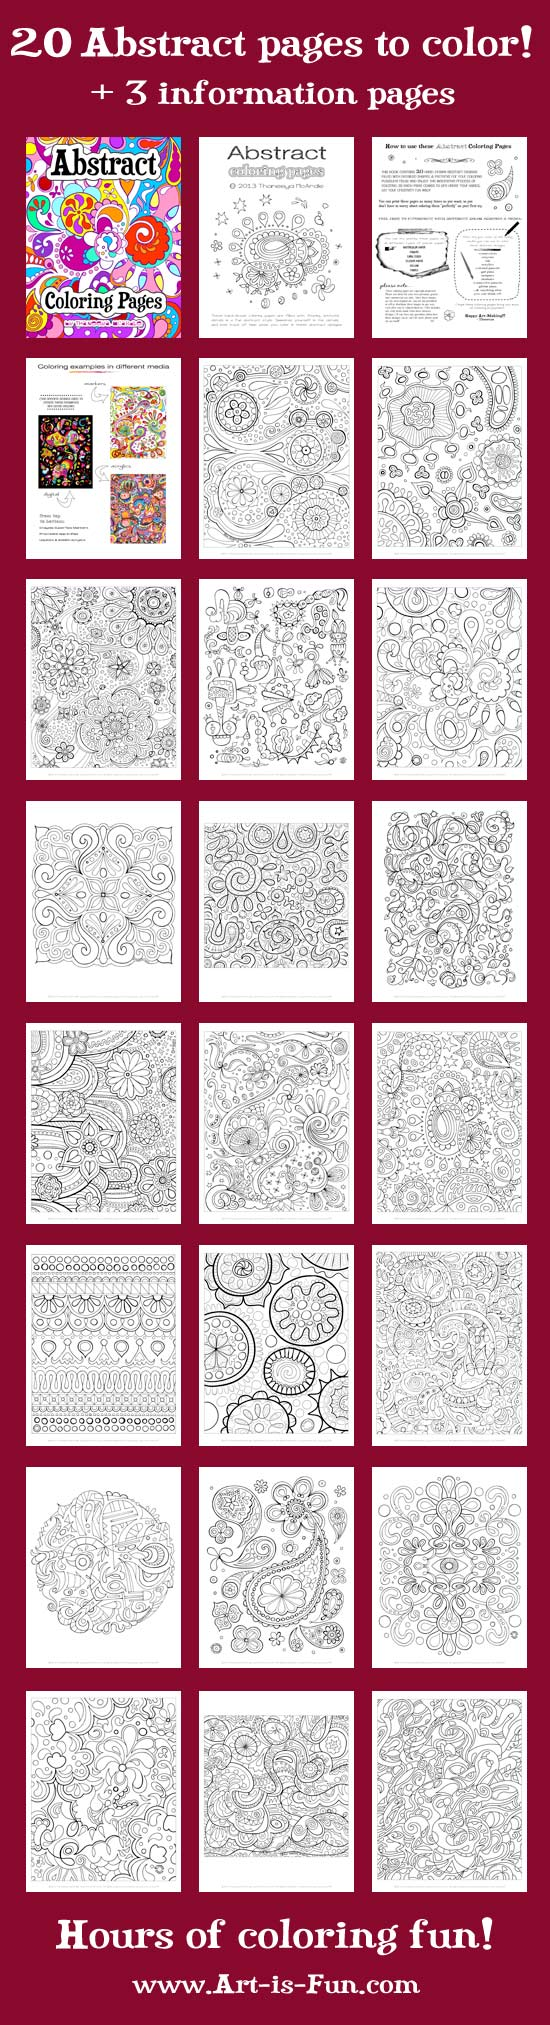 Free Abstract Coloring Page to